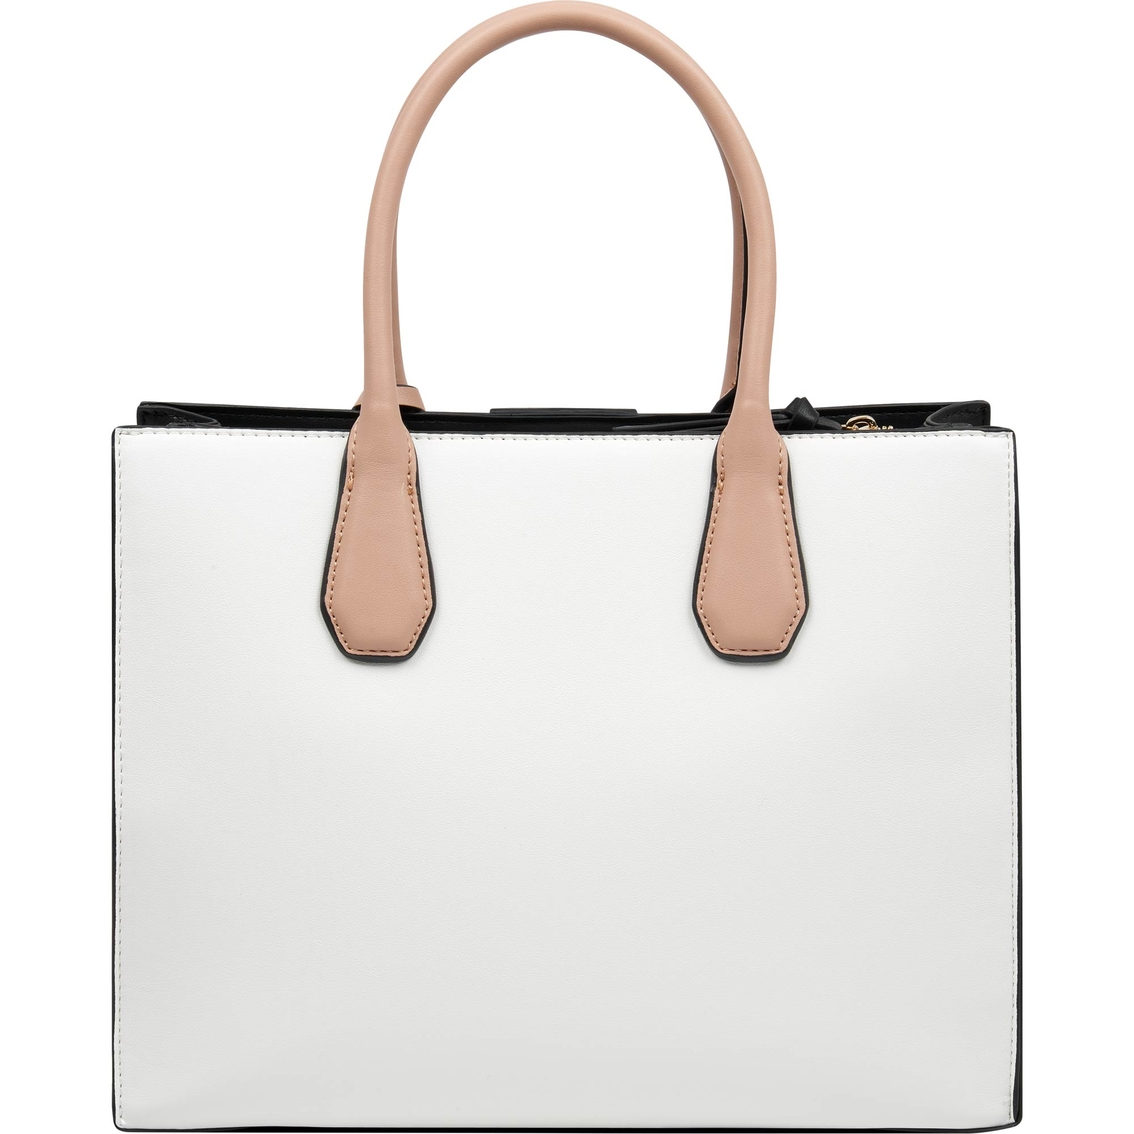 5ae4ff92d Nine West Maddol Tote | Totes & Shoppers | Handbags & Accessories ...